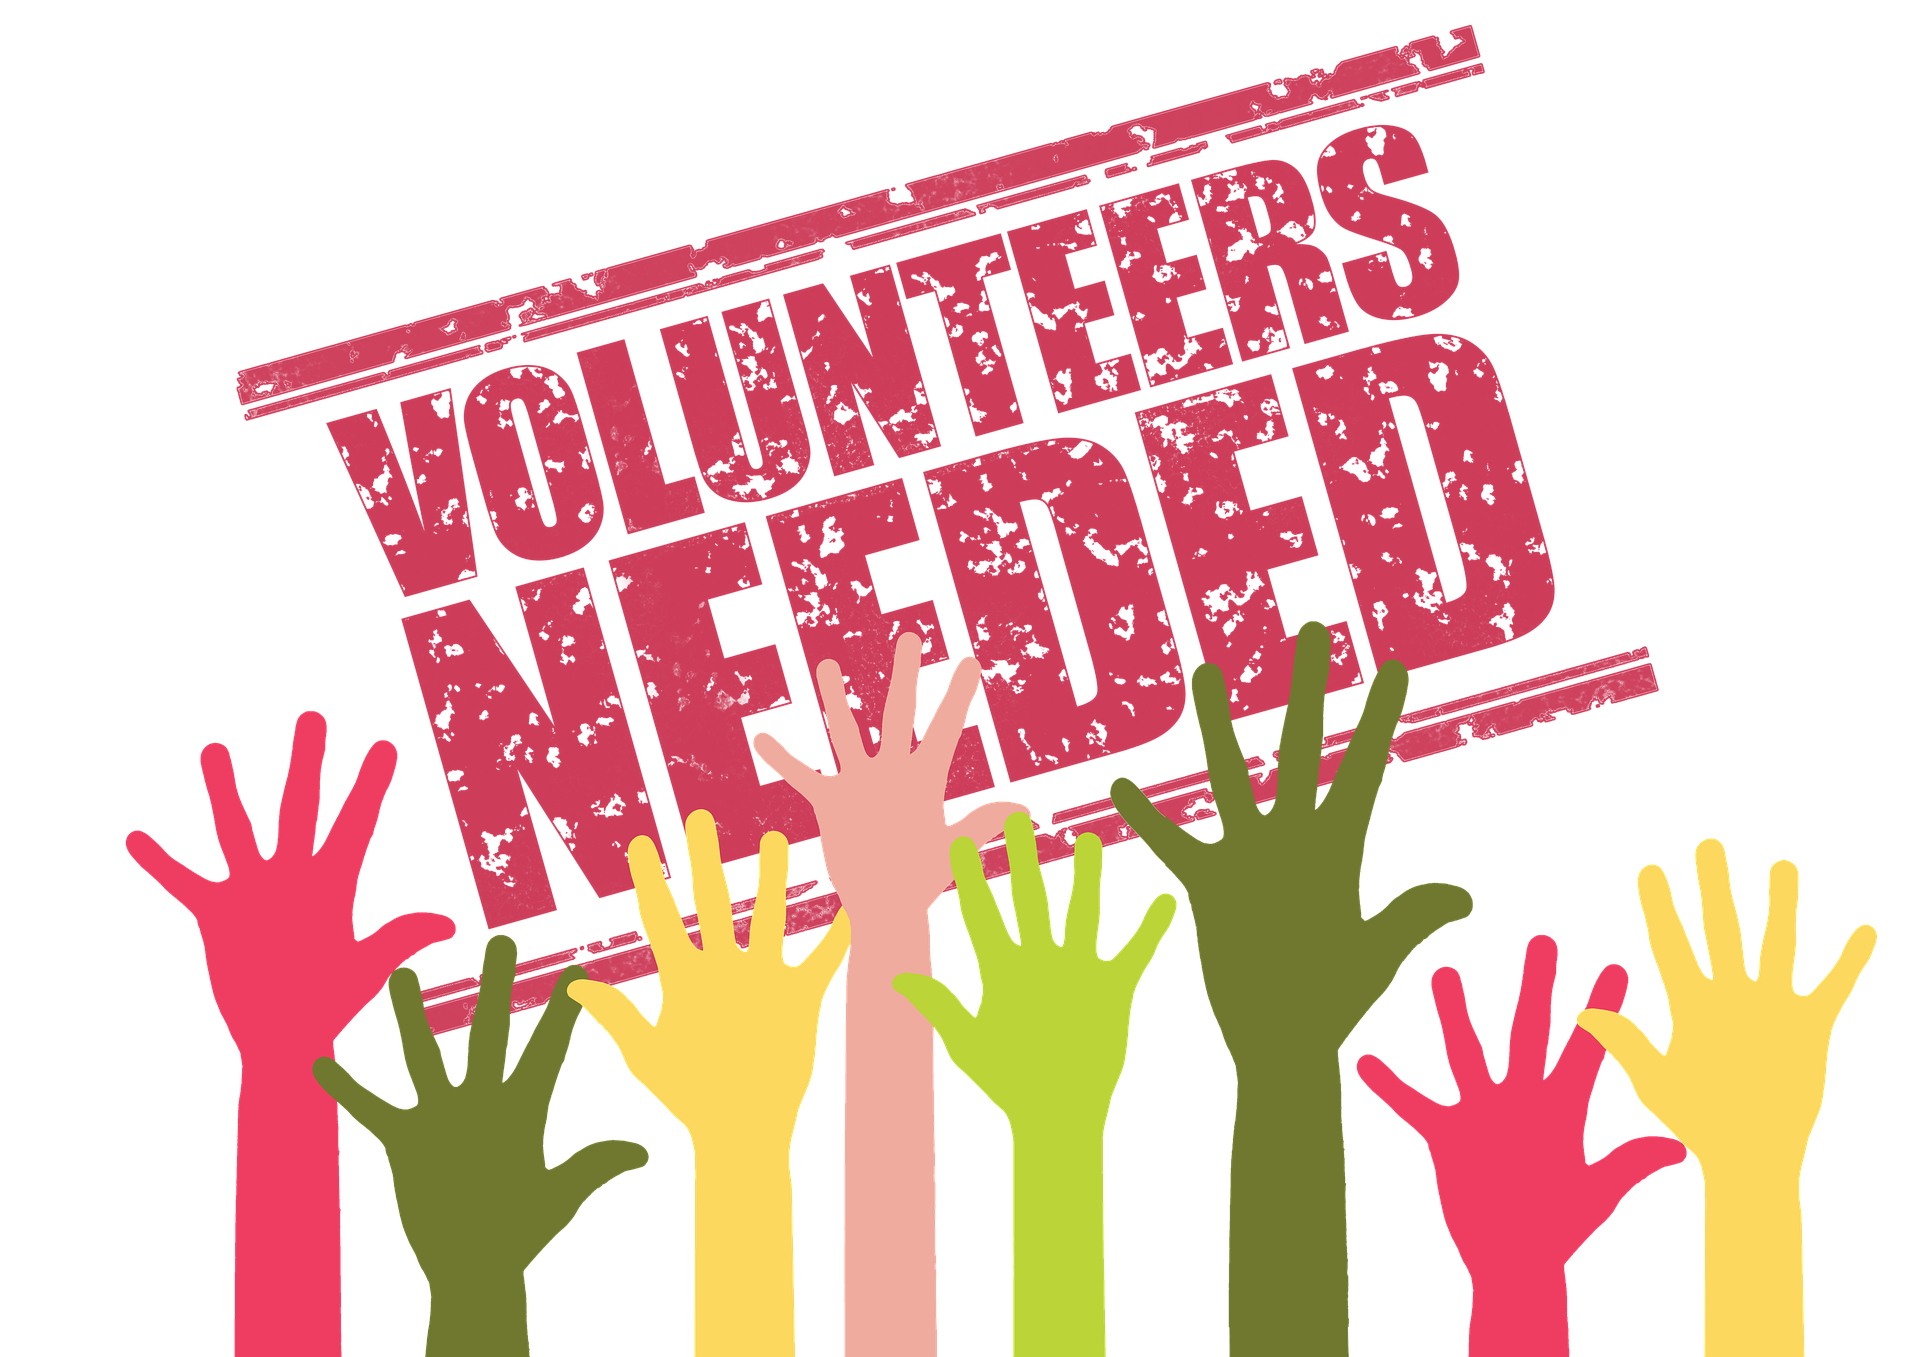 Community Service and Volunteerism - CCGC and its team members volunteer for a non-profit organization on a quarterly basis. The non-profit and/or community program is selected by the team members based on personal interests and convictions.